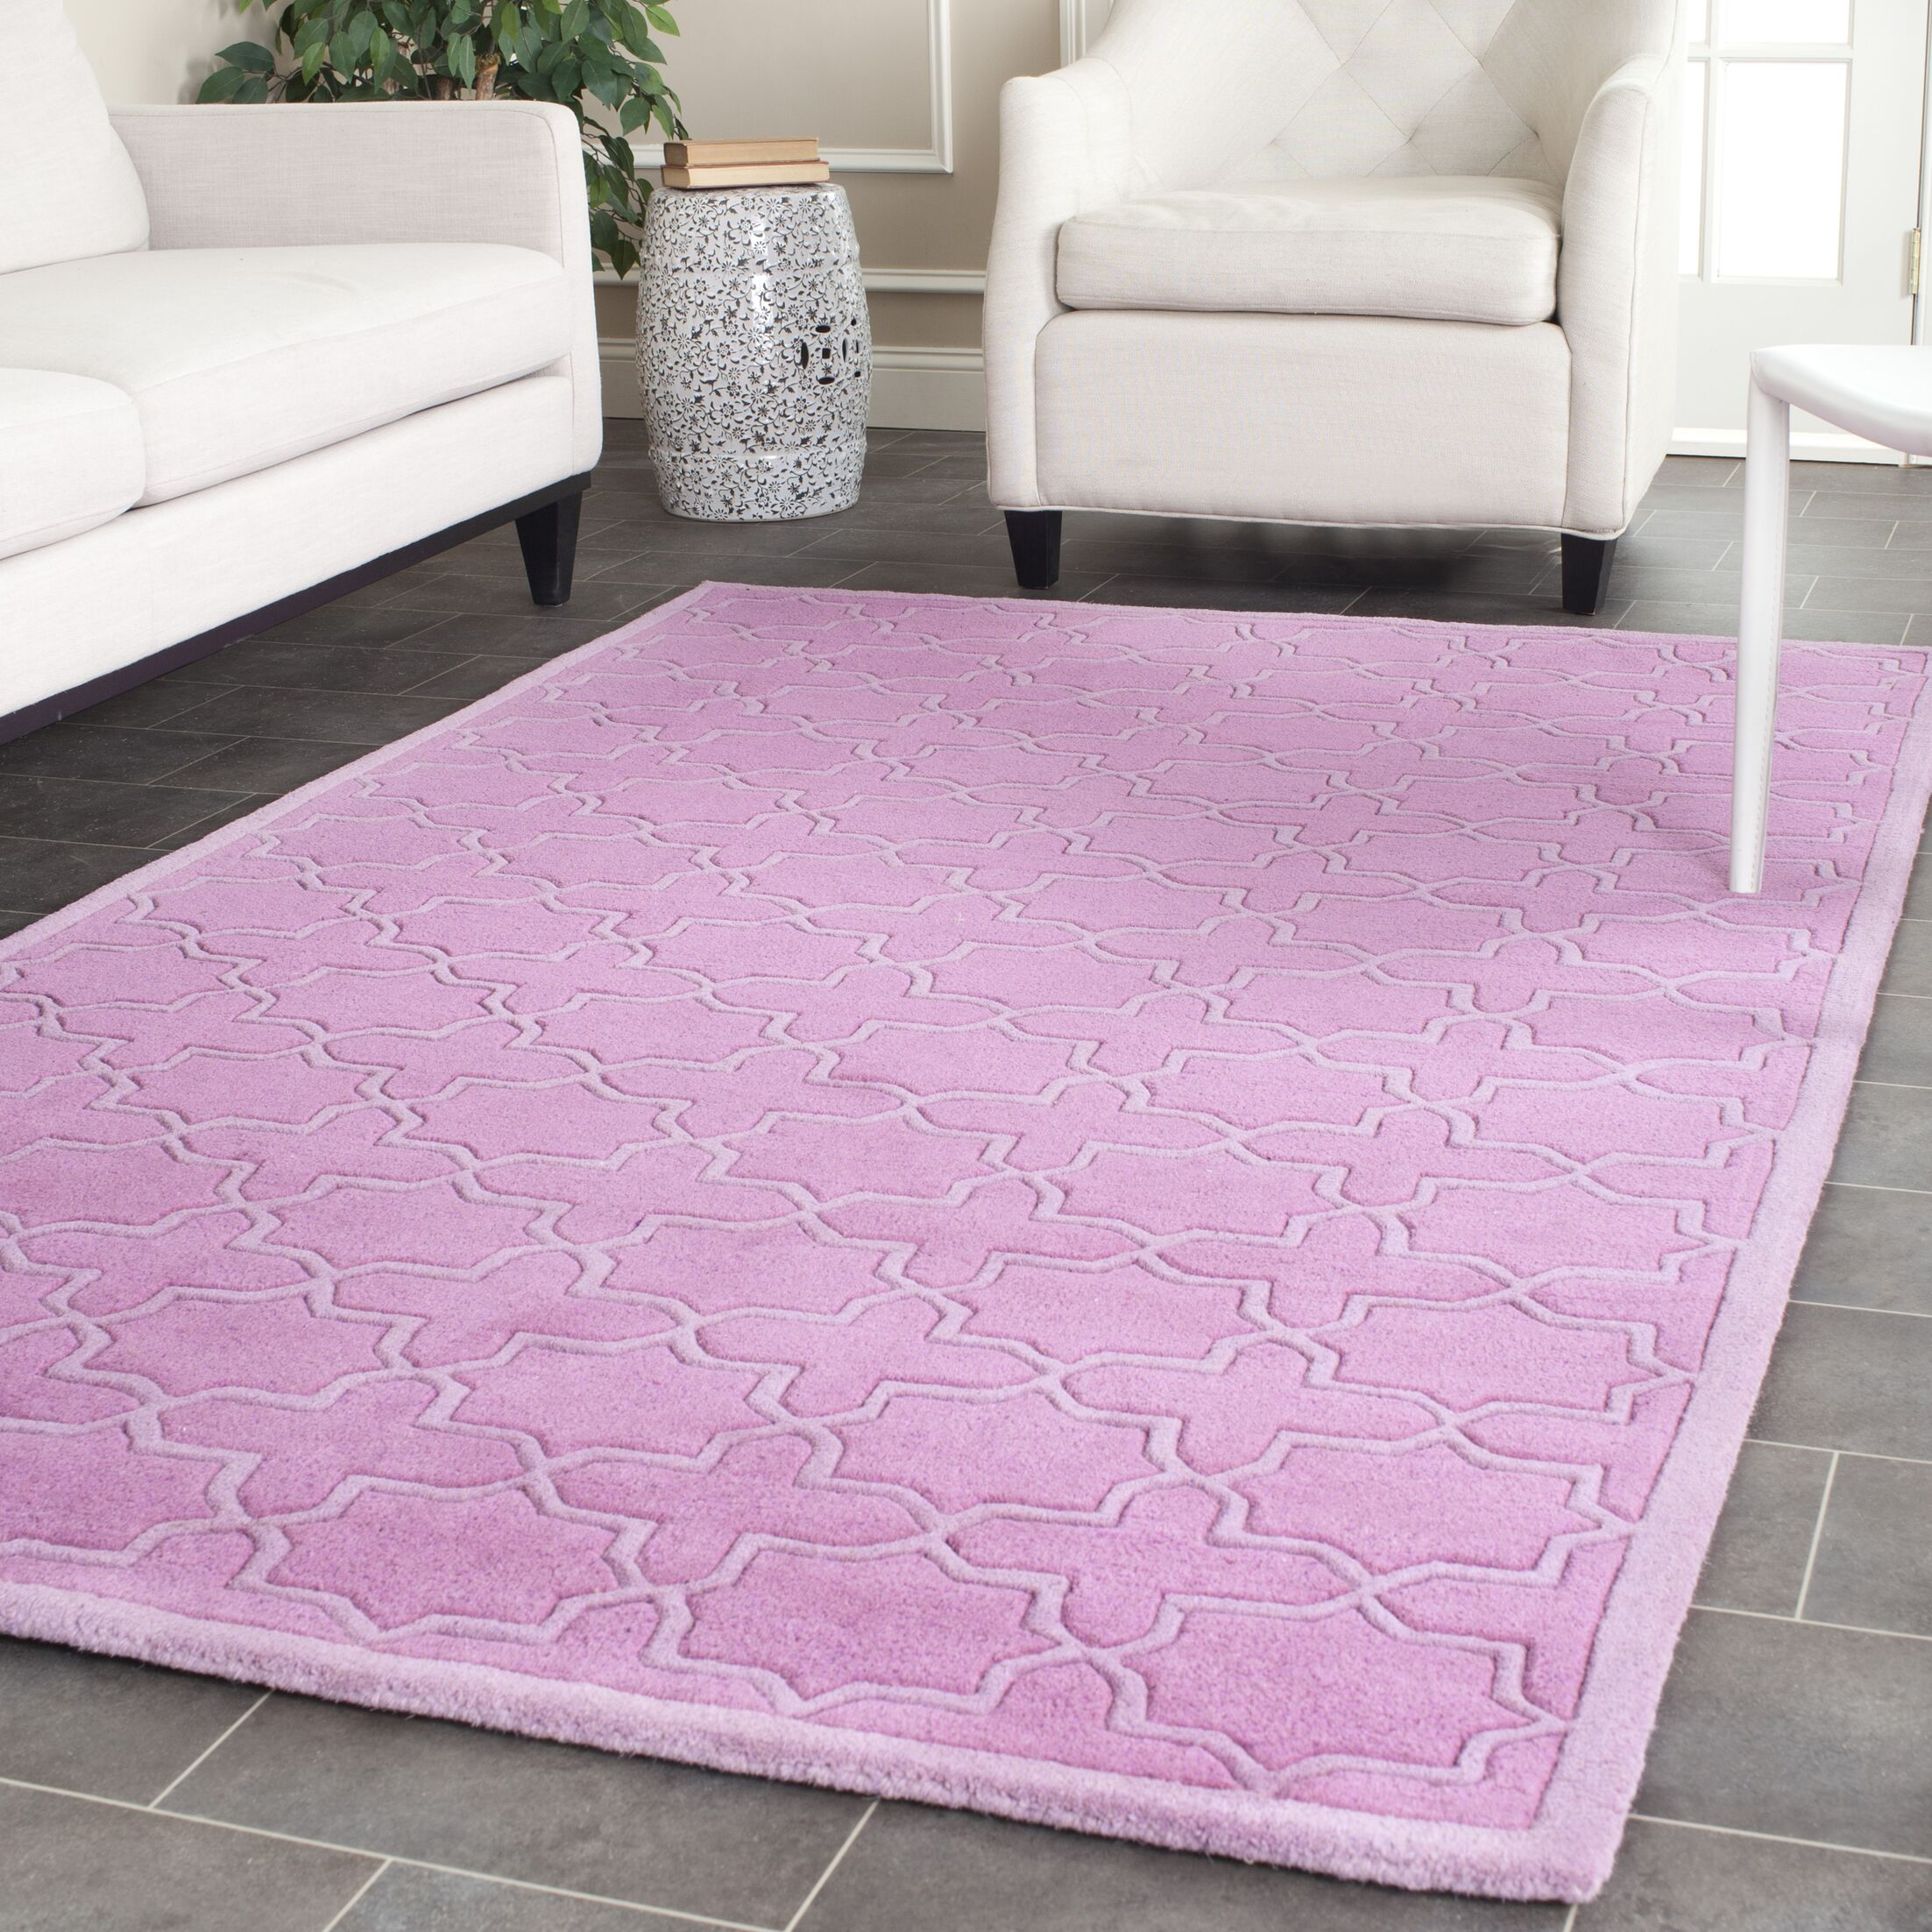 Wilkin Pink Area Rug Rug Size: Rectangle 8'9